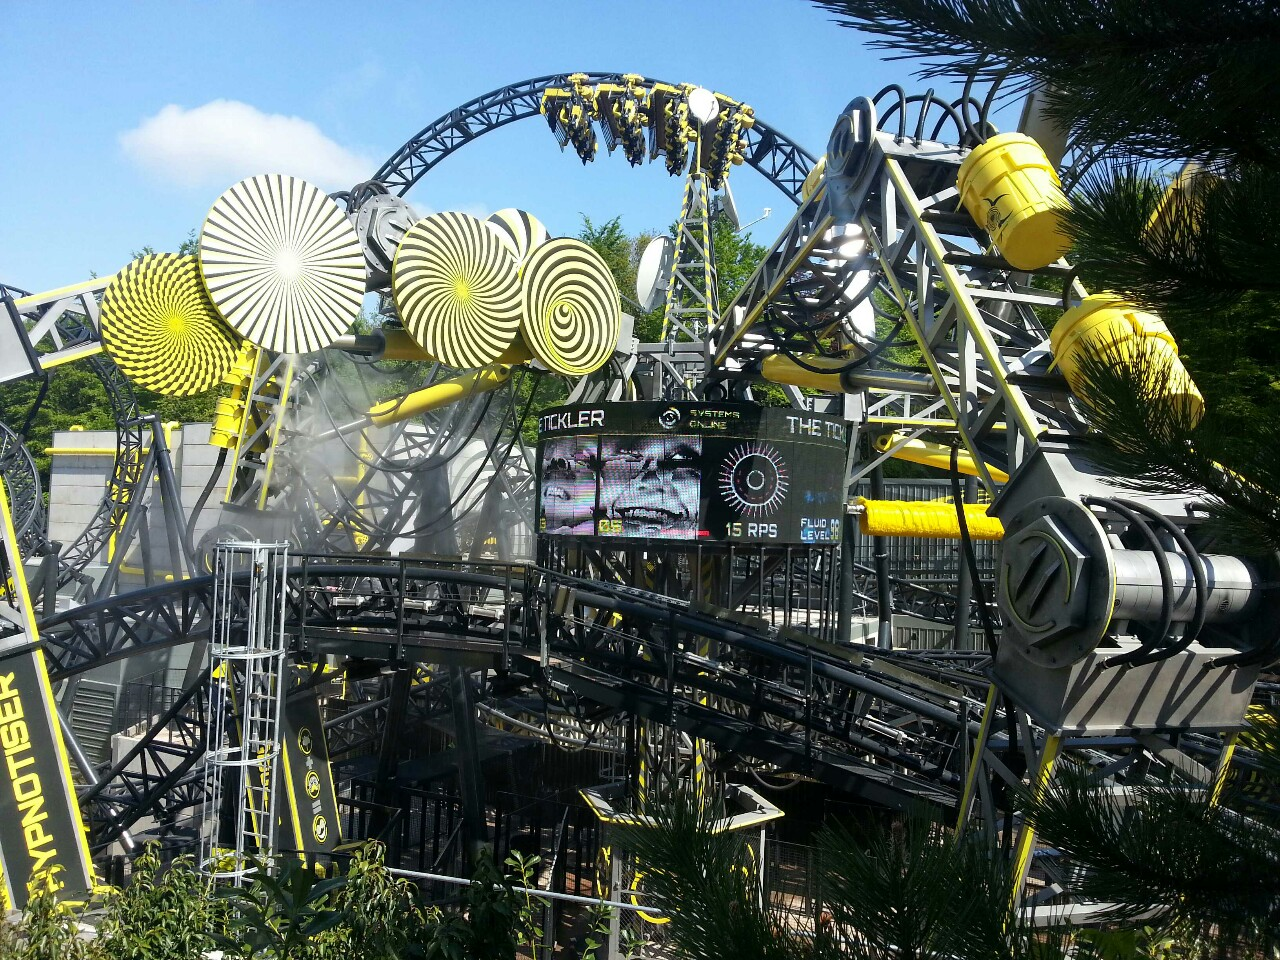 Alton Towers Crash Blood Everywhere After Smash On 14